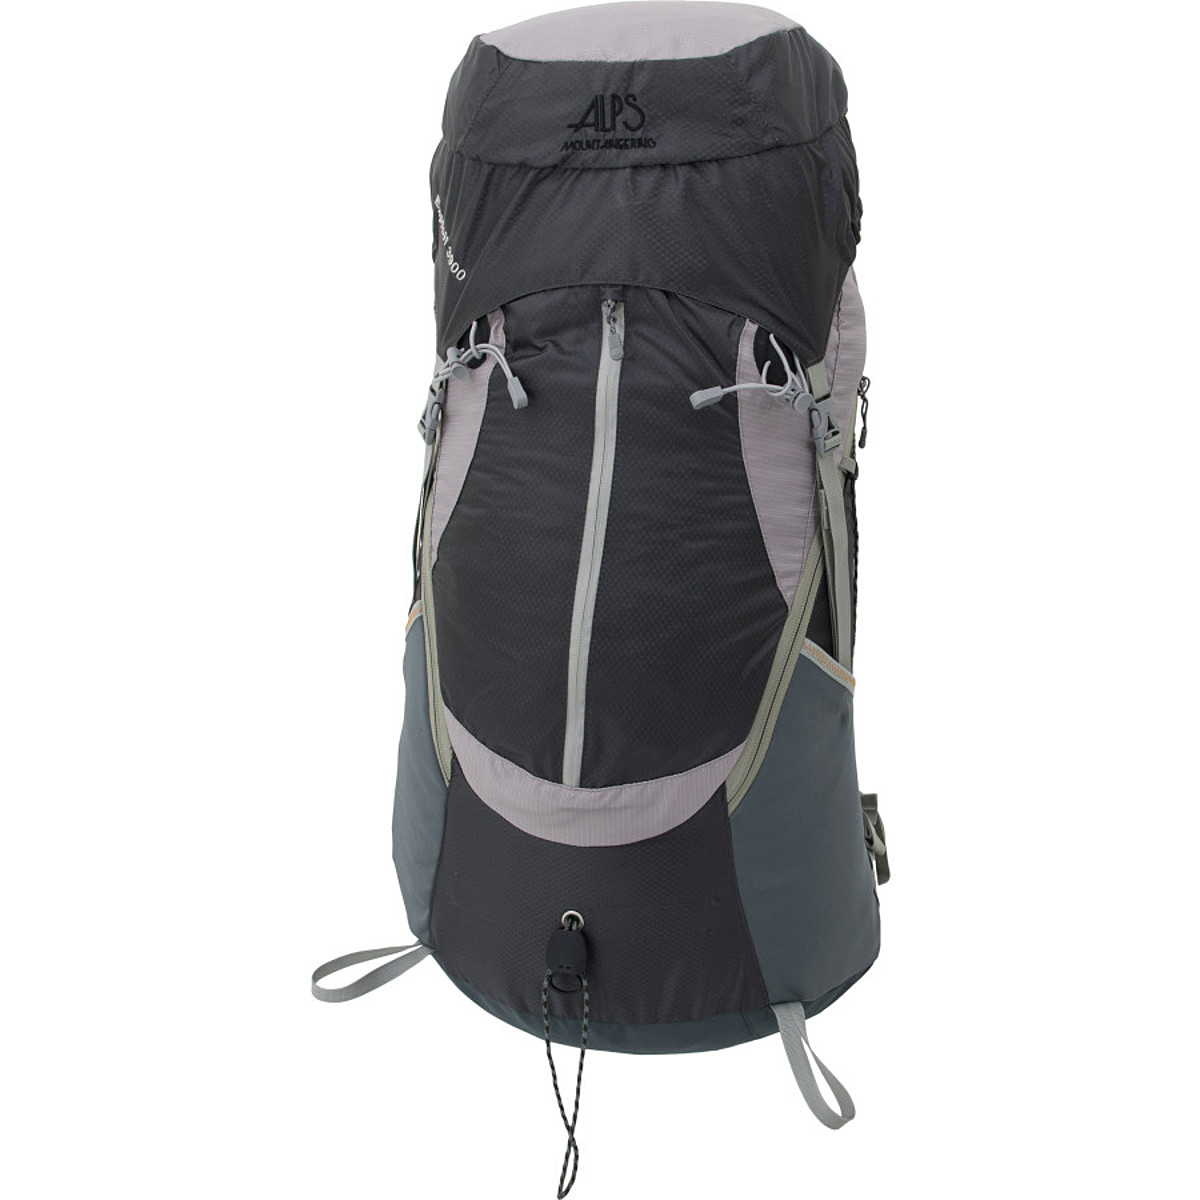 ALPS Mountaineering Exploit 3900